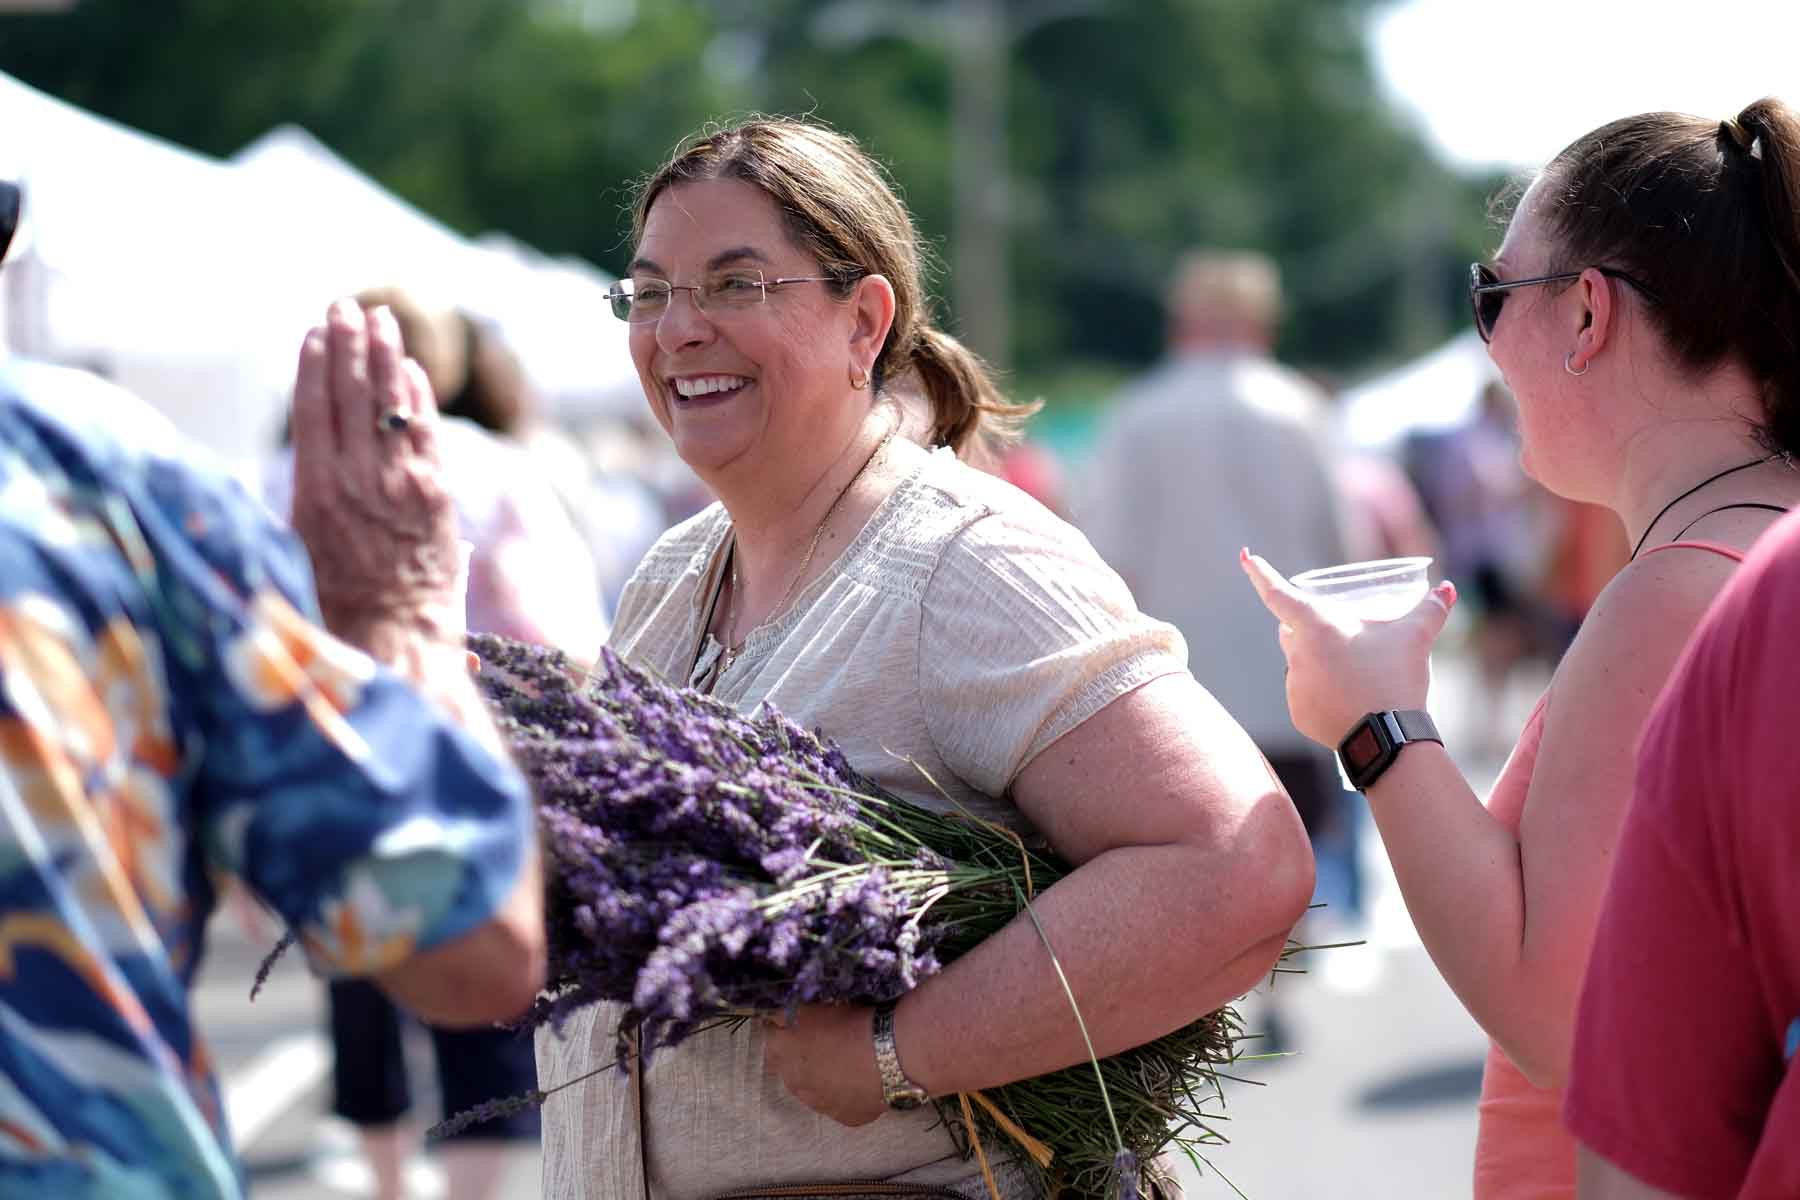 farmers' market - Visit the Oak Ridge Farmers' Market across the street from Lavender Festival. Open 8 to noon.